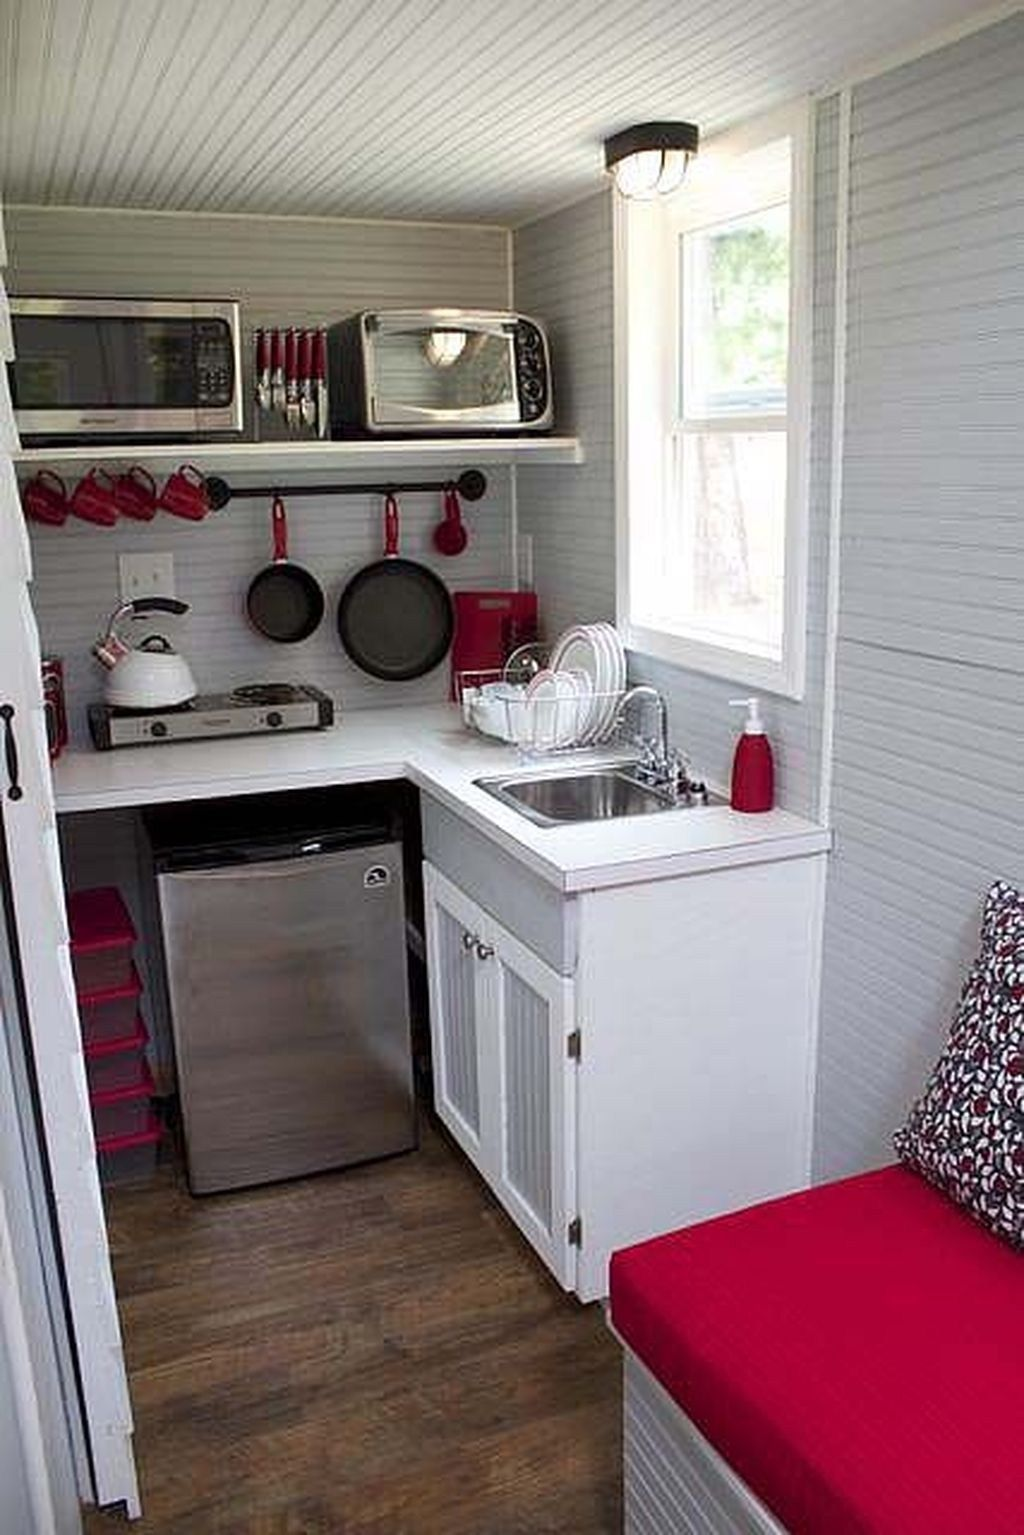 50 terrific small and simple kitchen design ideas tiny house living home kitchens kitchen design on kitchen ideas simple id=51407